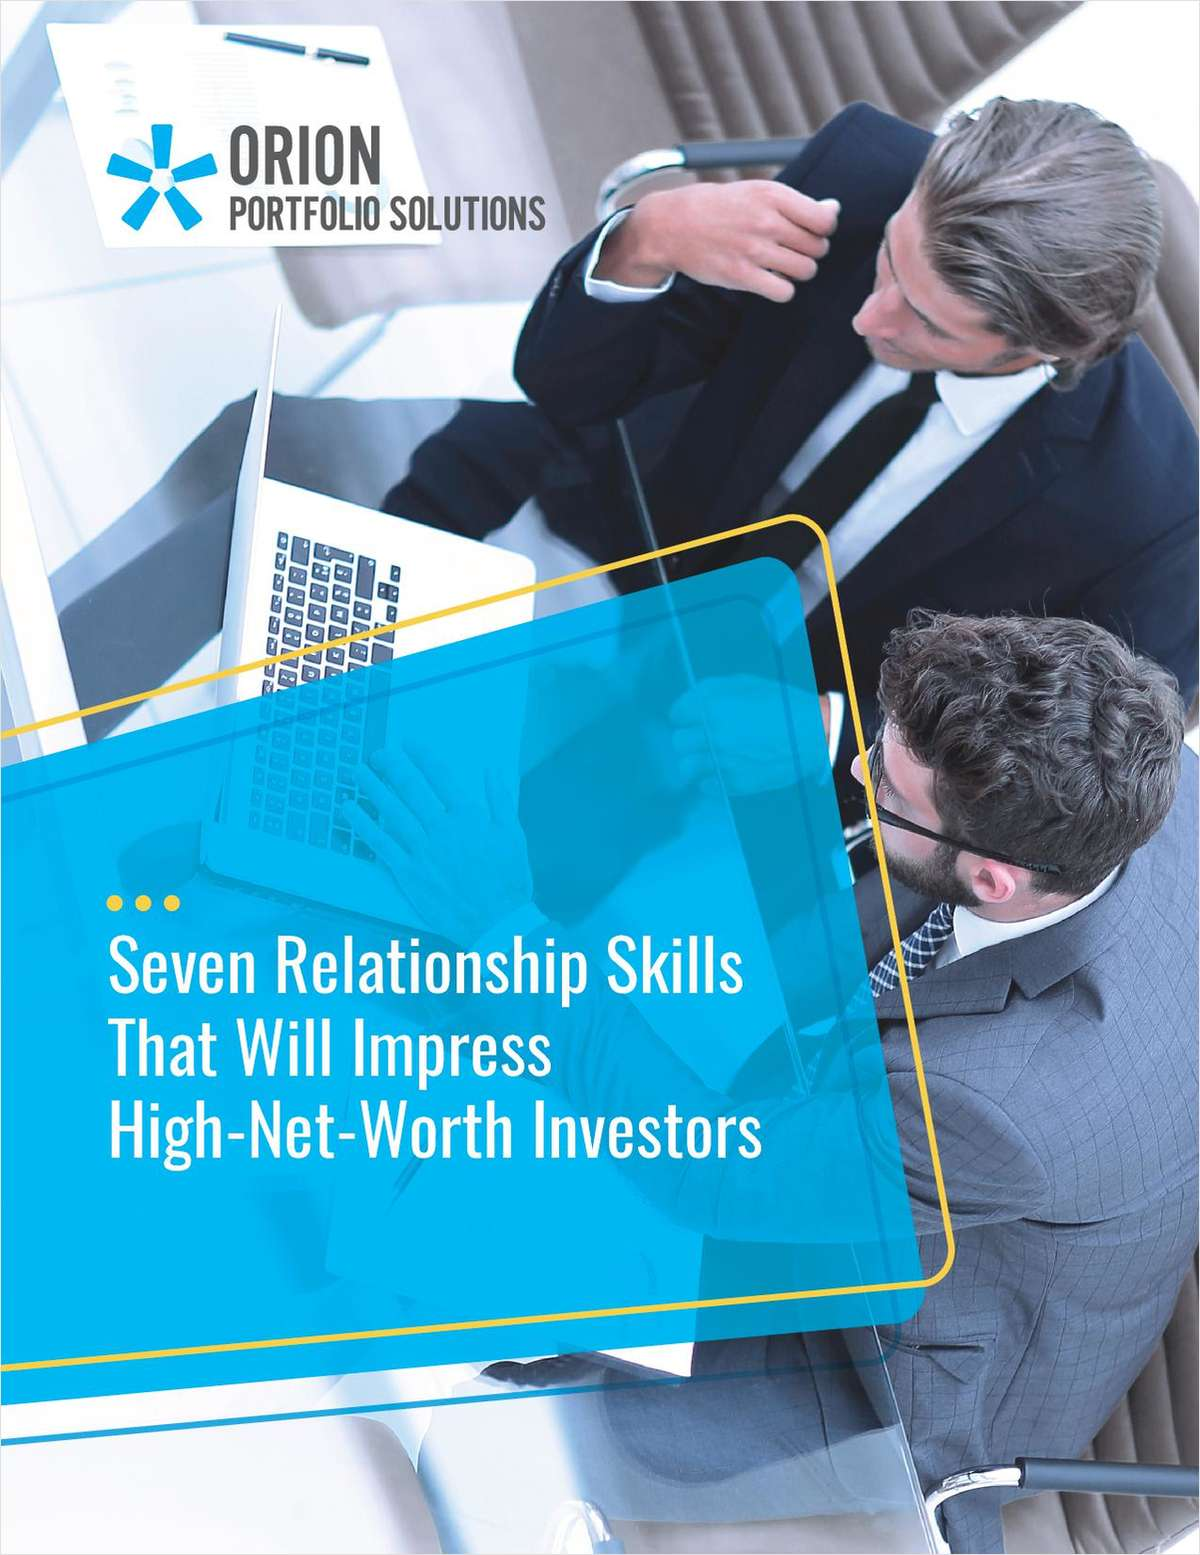 Seven Relationship Skills That Will Impress High-Net-Worth Investors